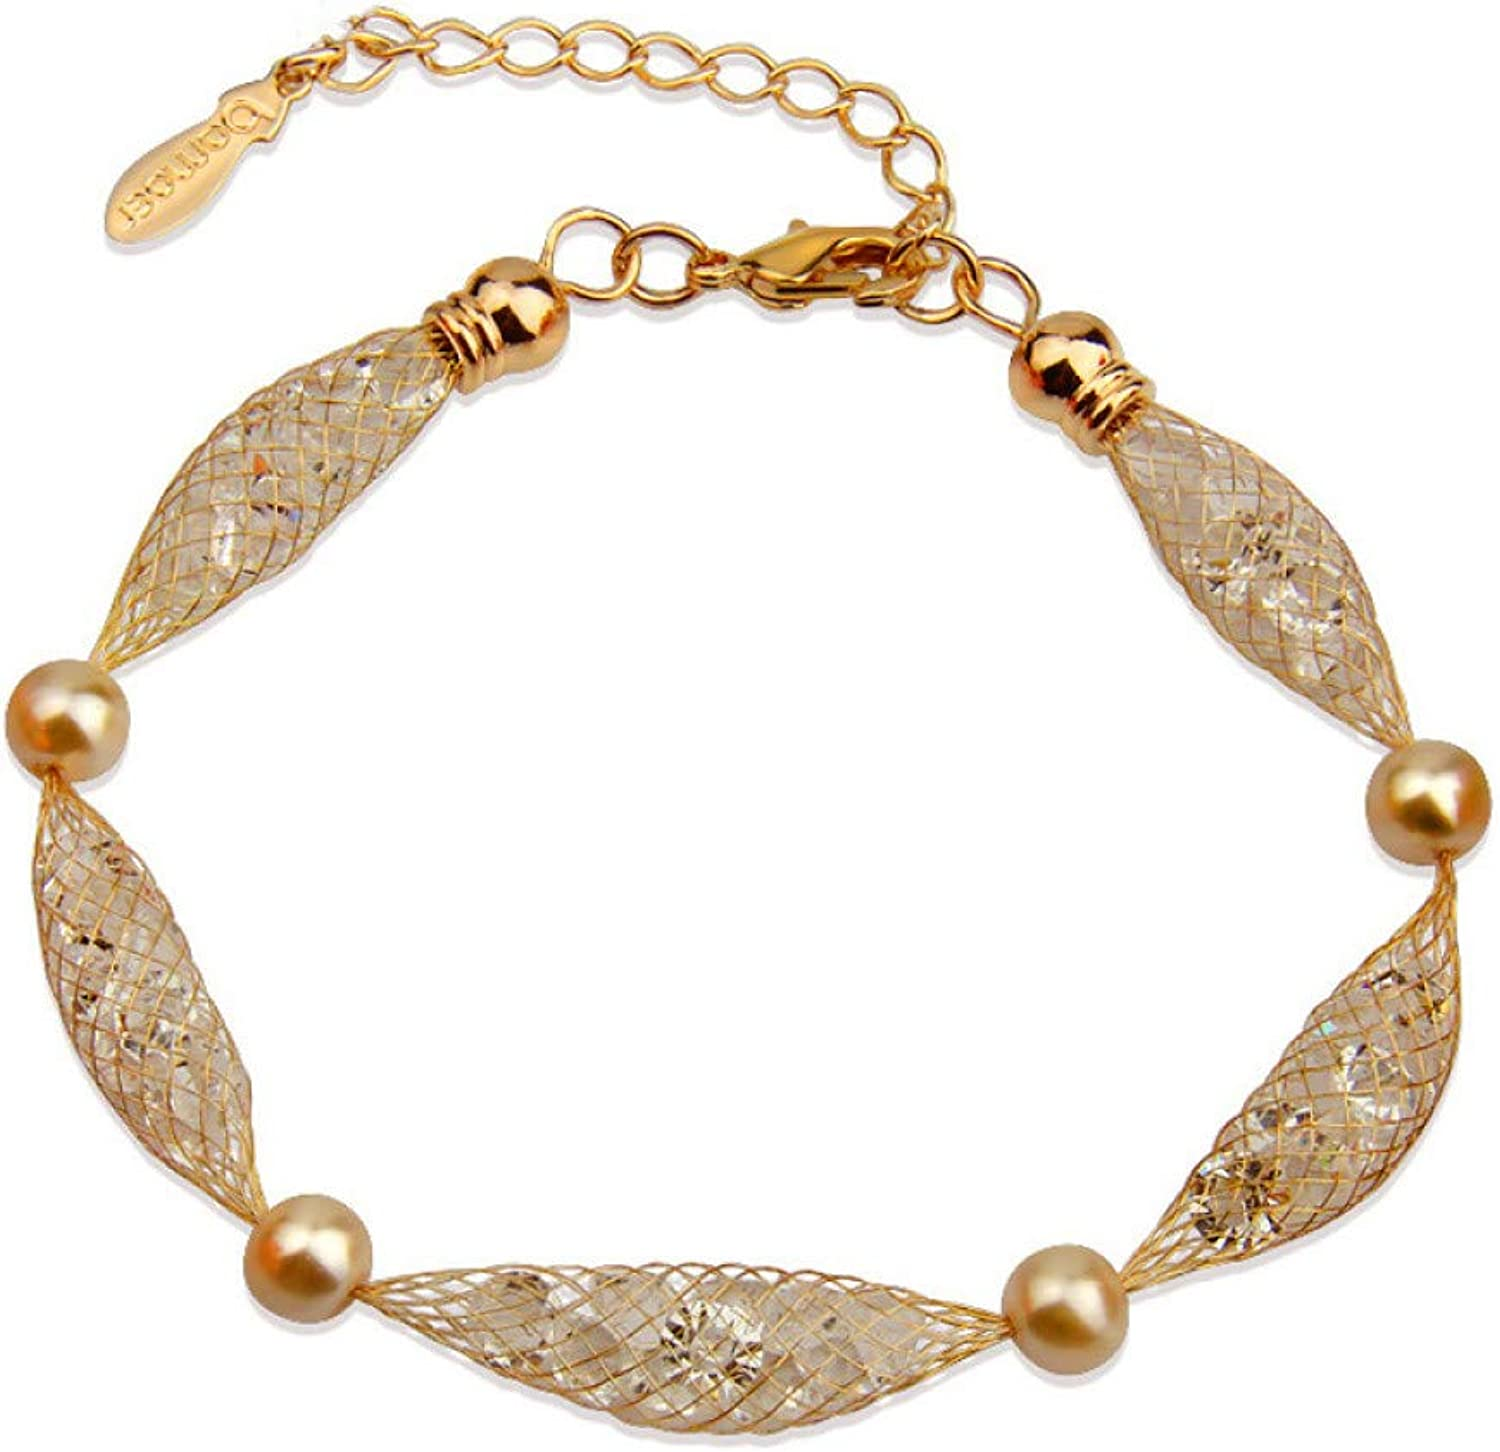 GMYANYSZ Newest Arrival Luxury Champagne gold color Bracelet for Women Crystal Birthday Gift Jewelry